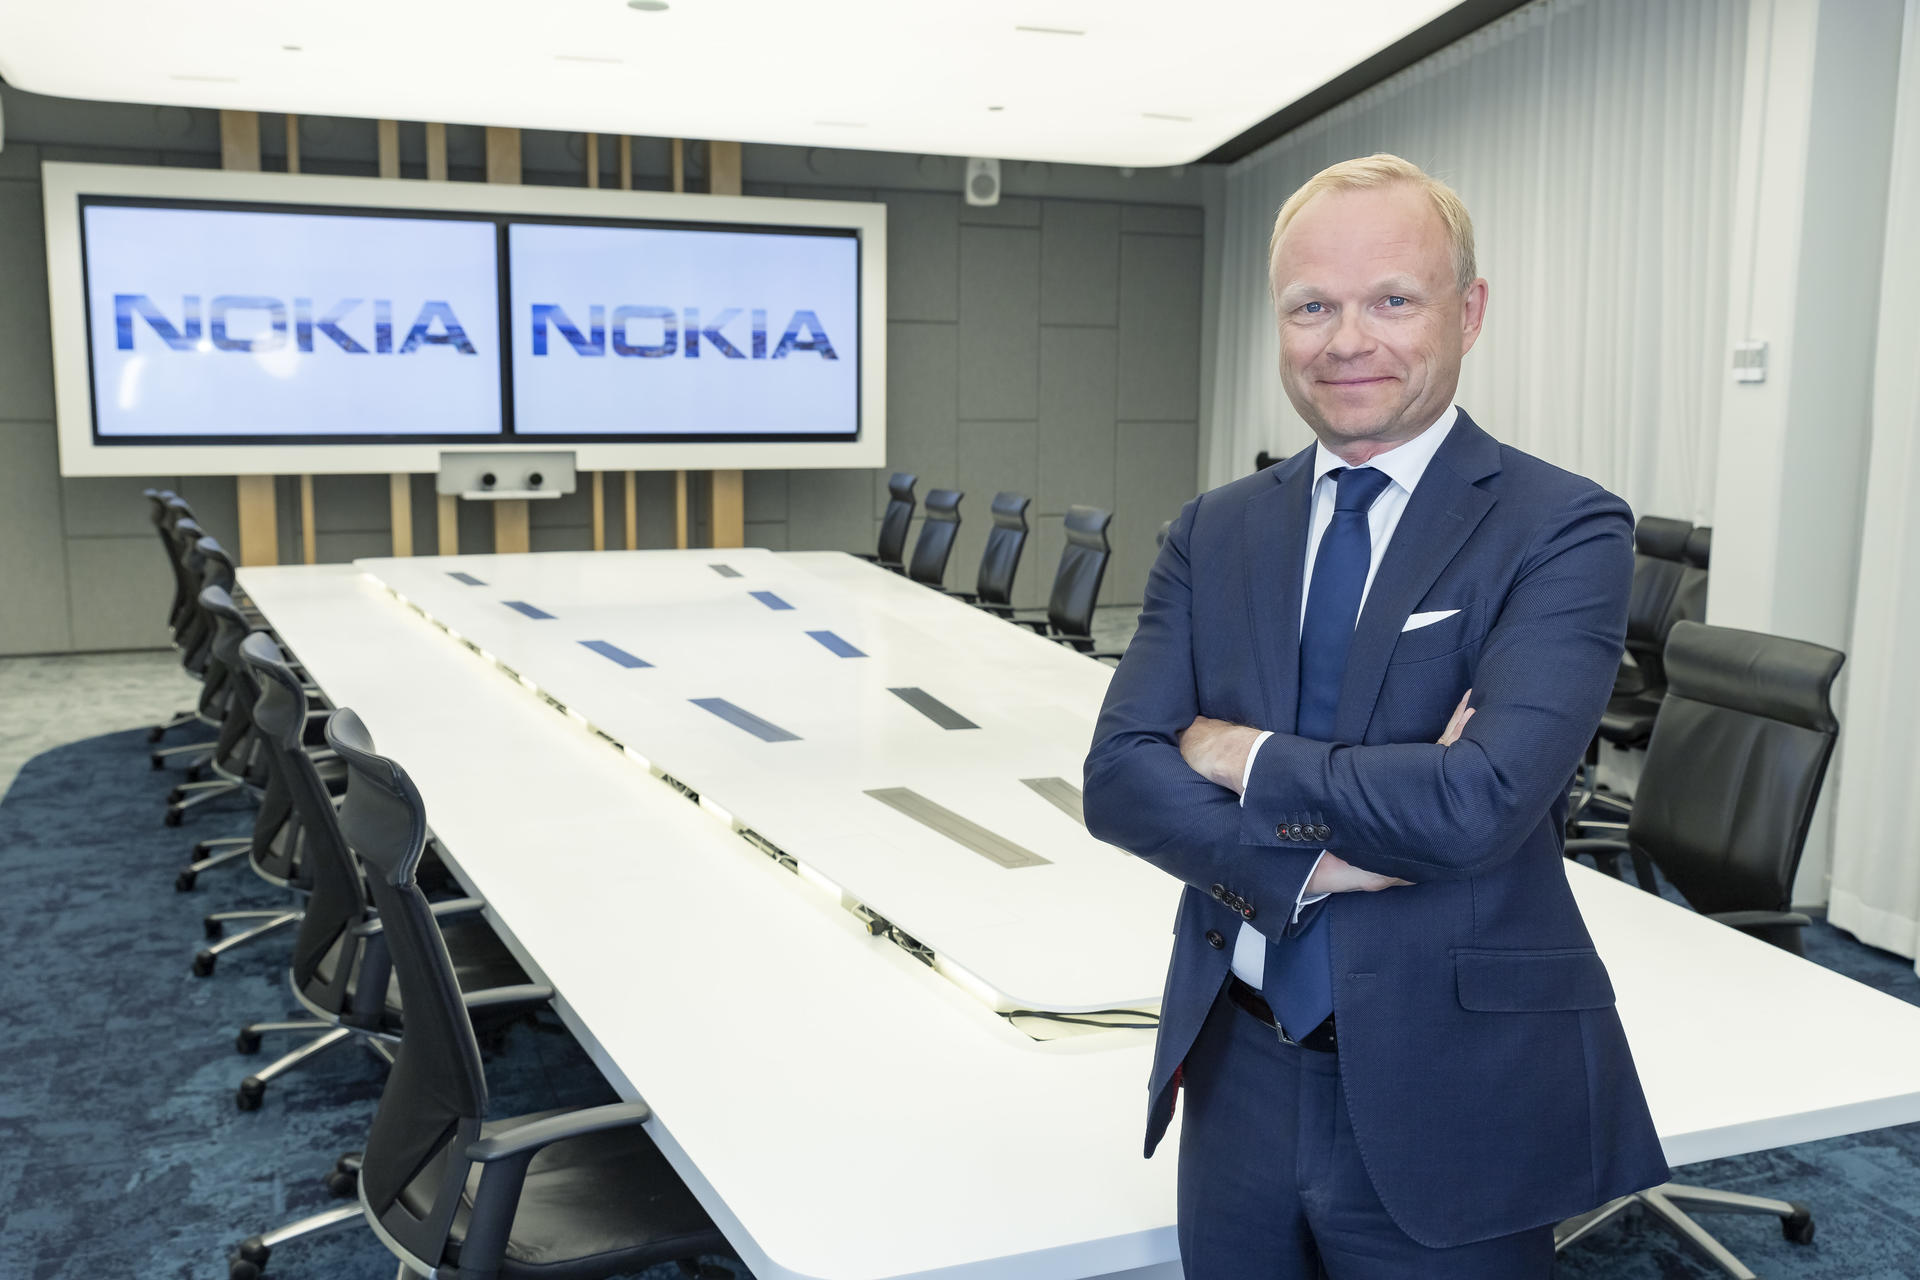 Nokia expands its AirScale portfolio with several new 5G solutions